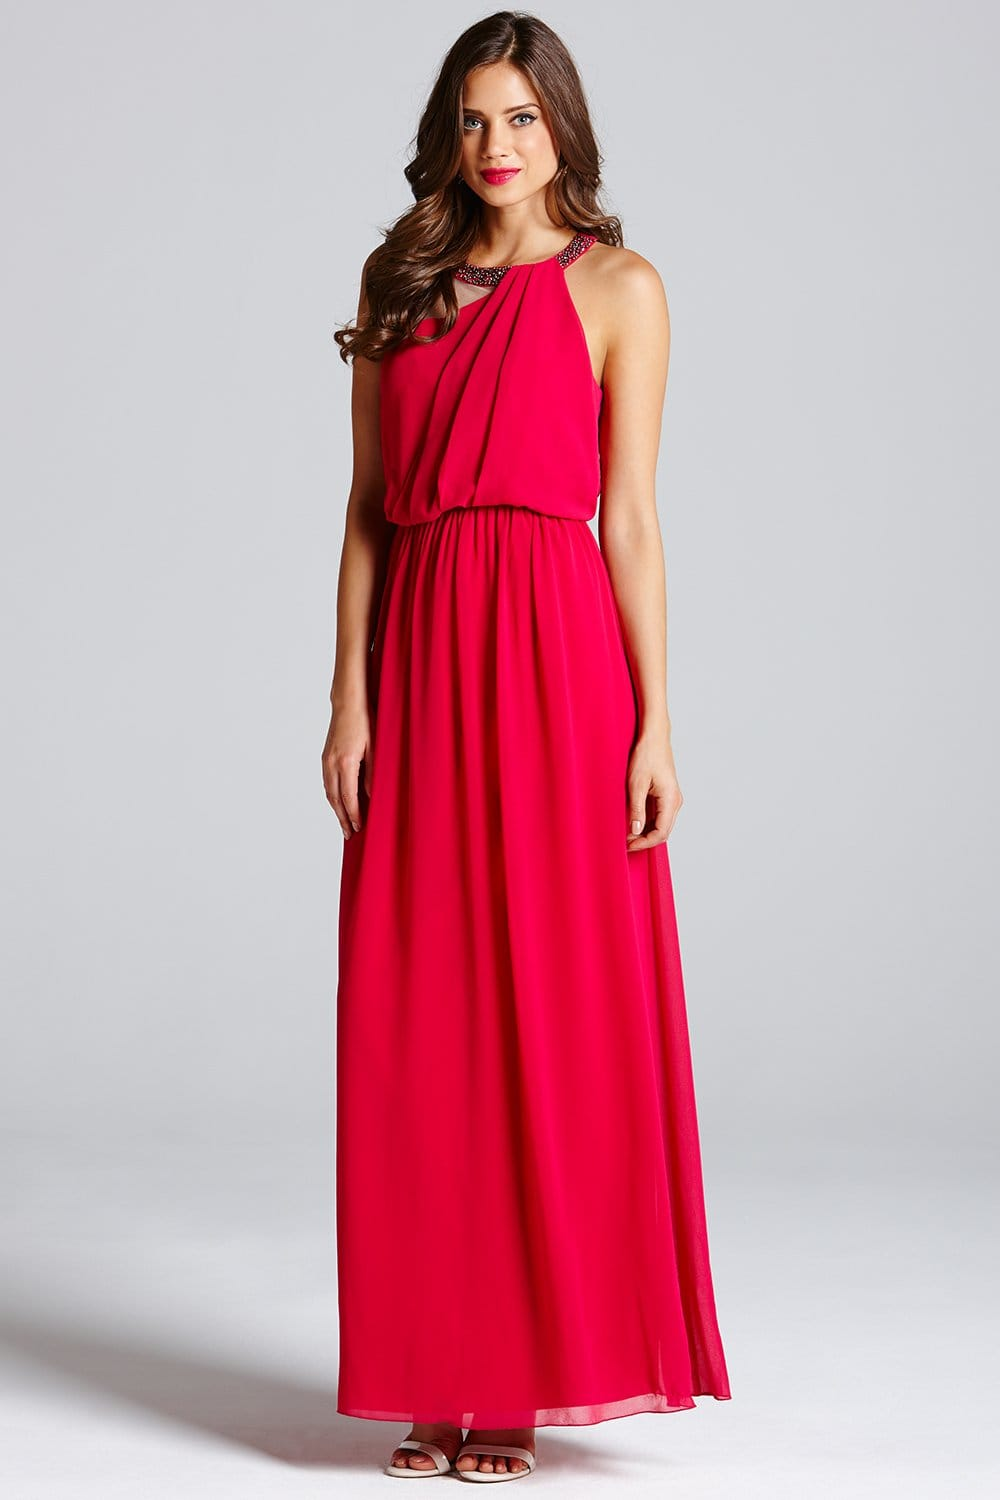 Little Mistress Hot Pink One Shoulder Drape Maxi Dress - Little ...